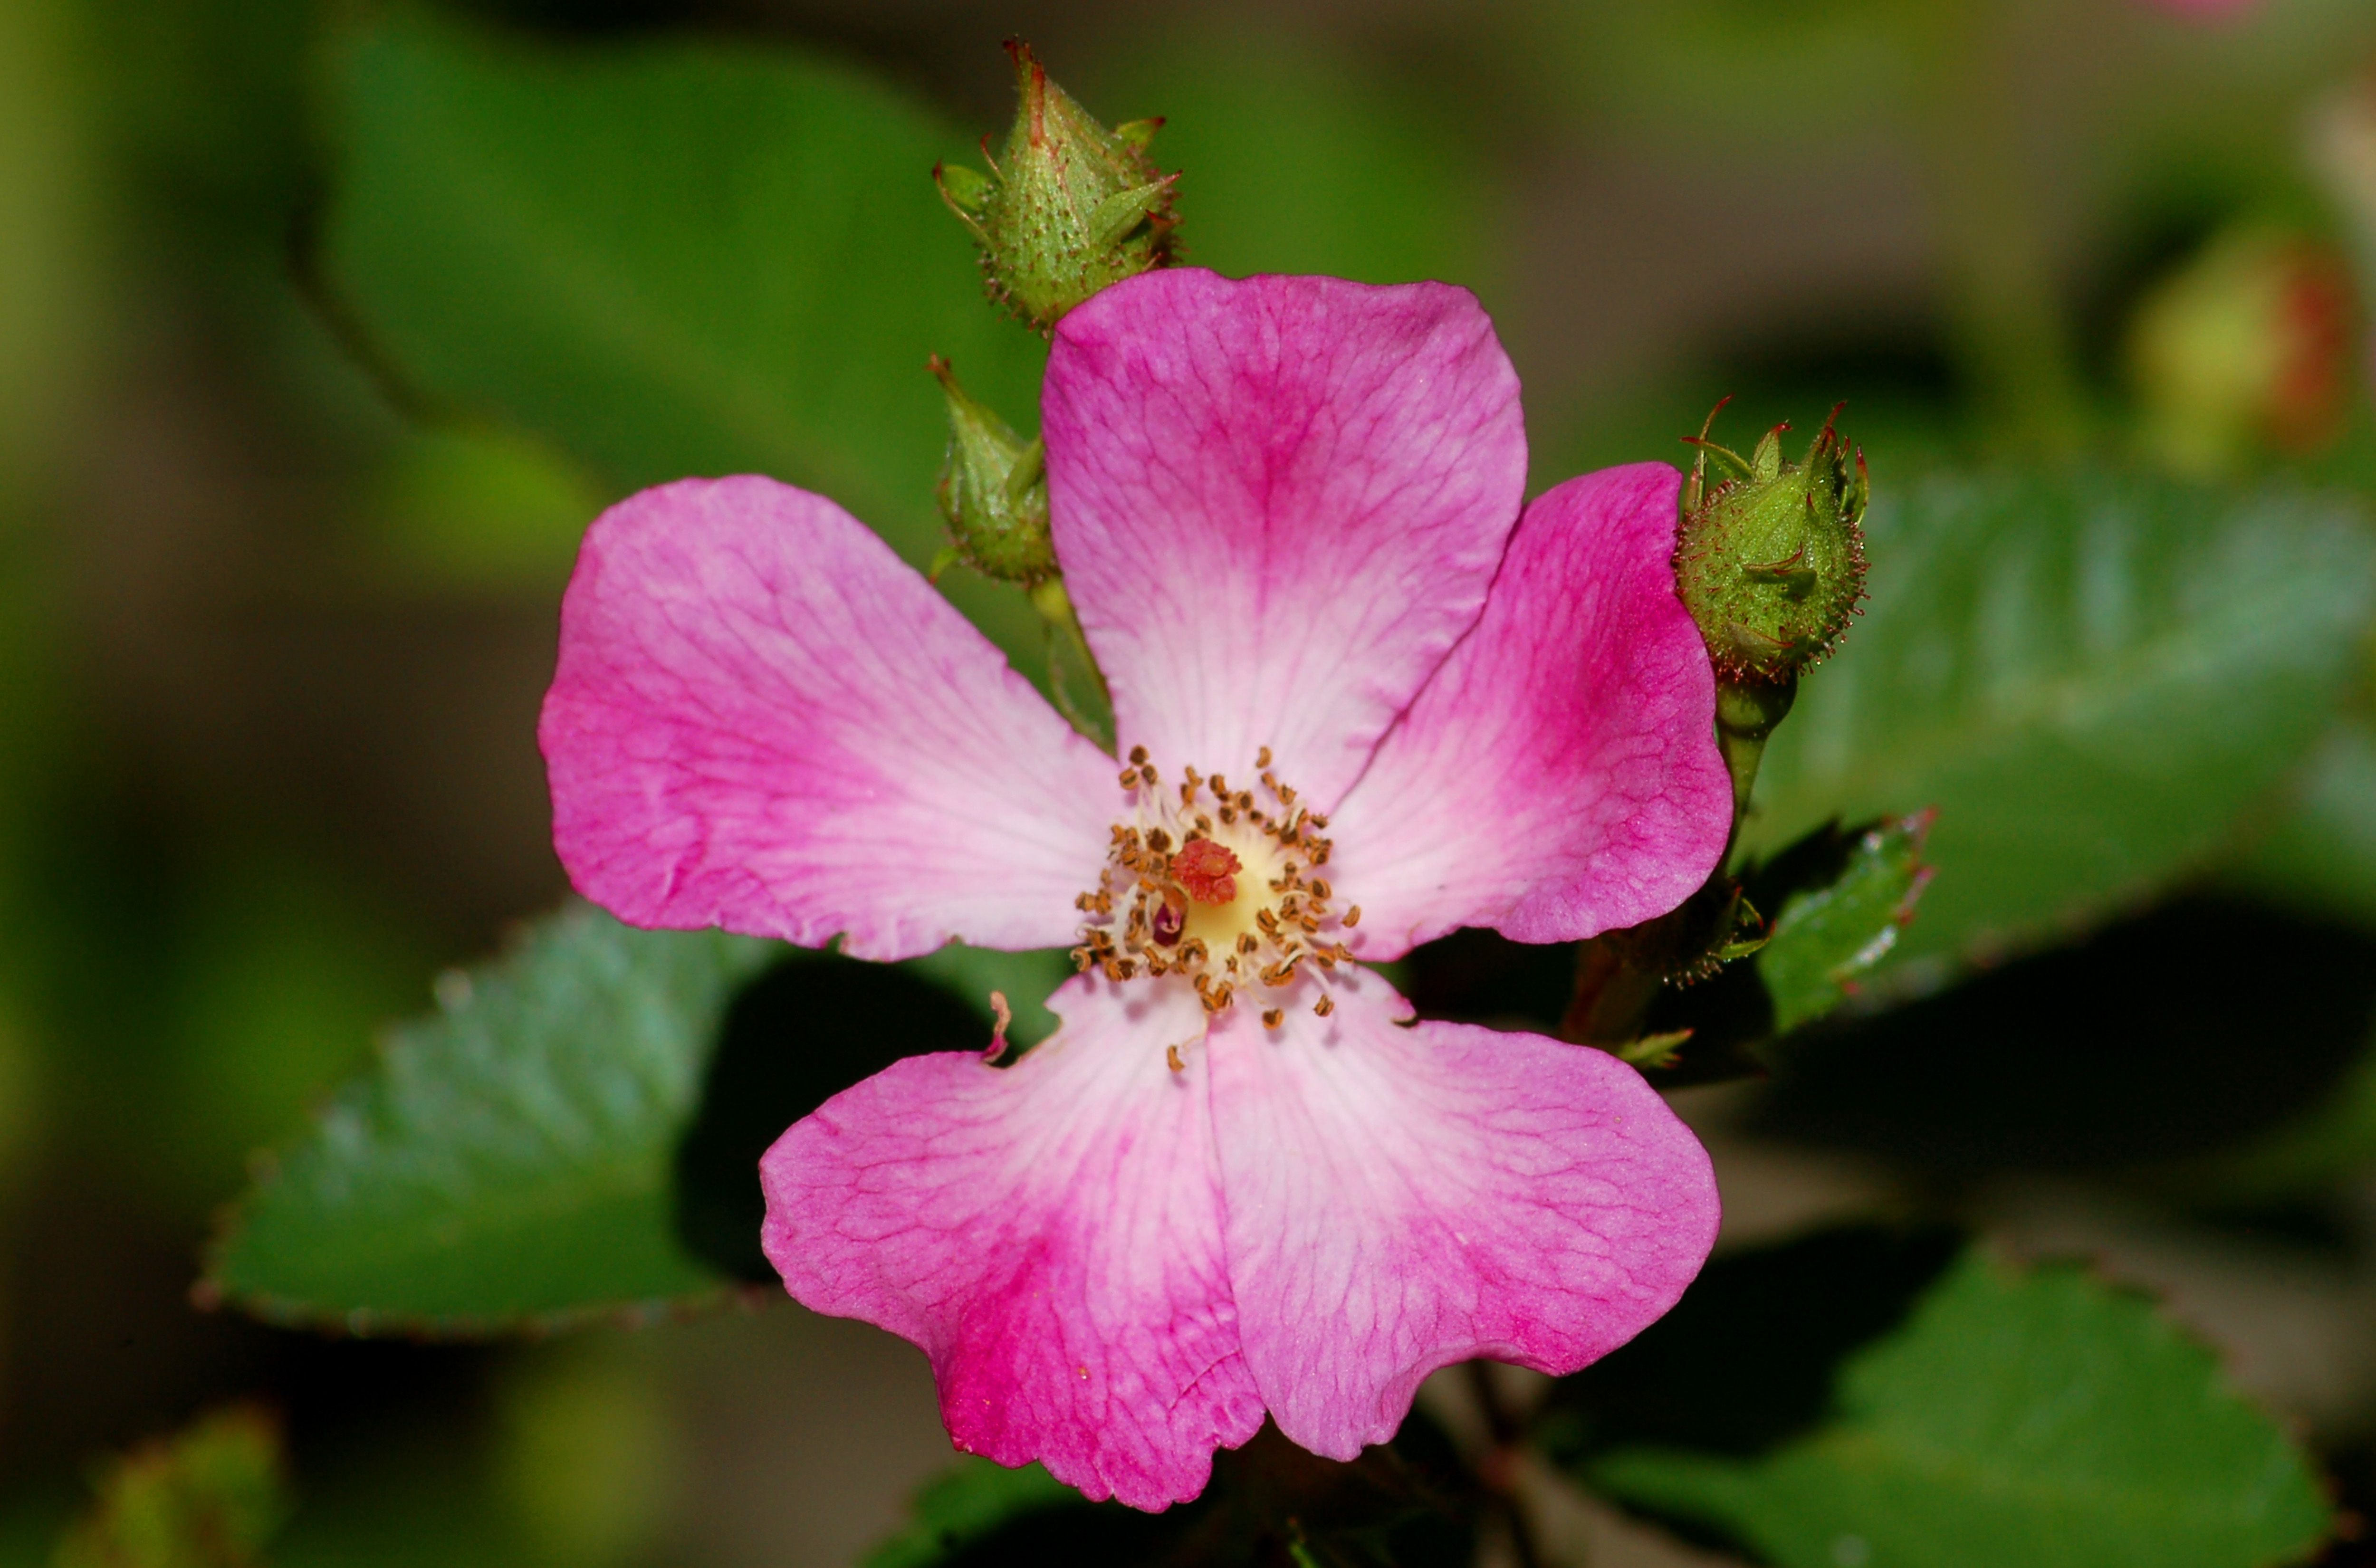 Oso Happy Smoothie rose bush with a pink flower.